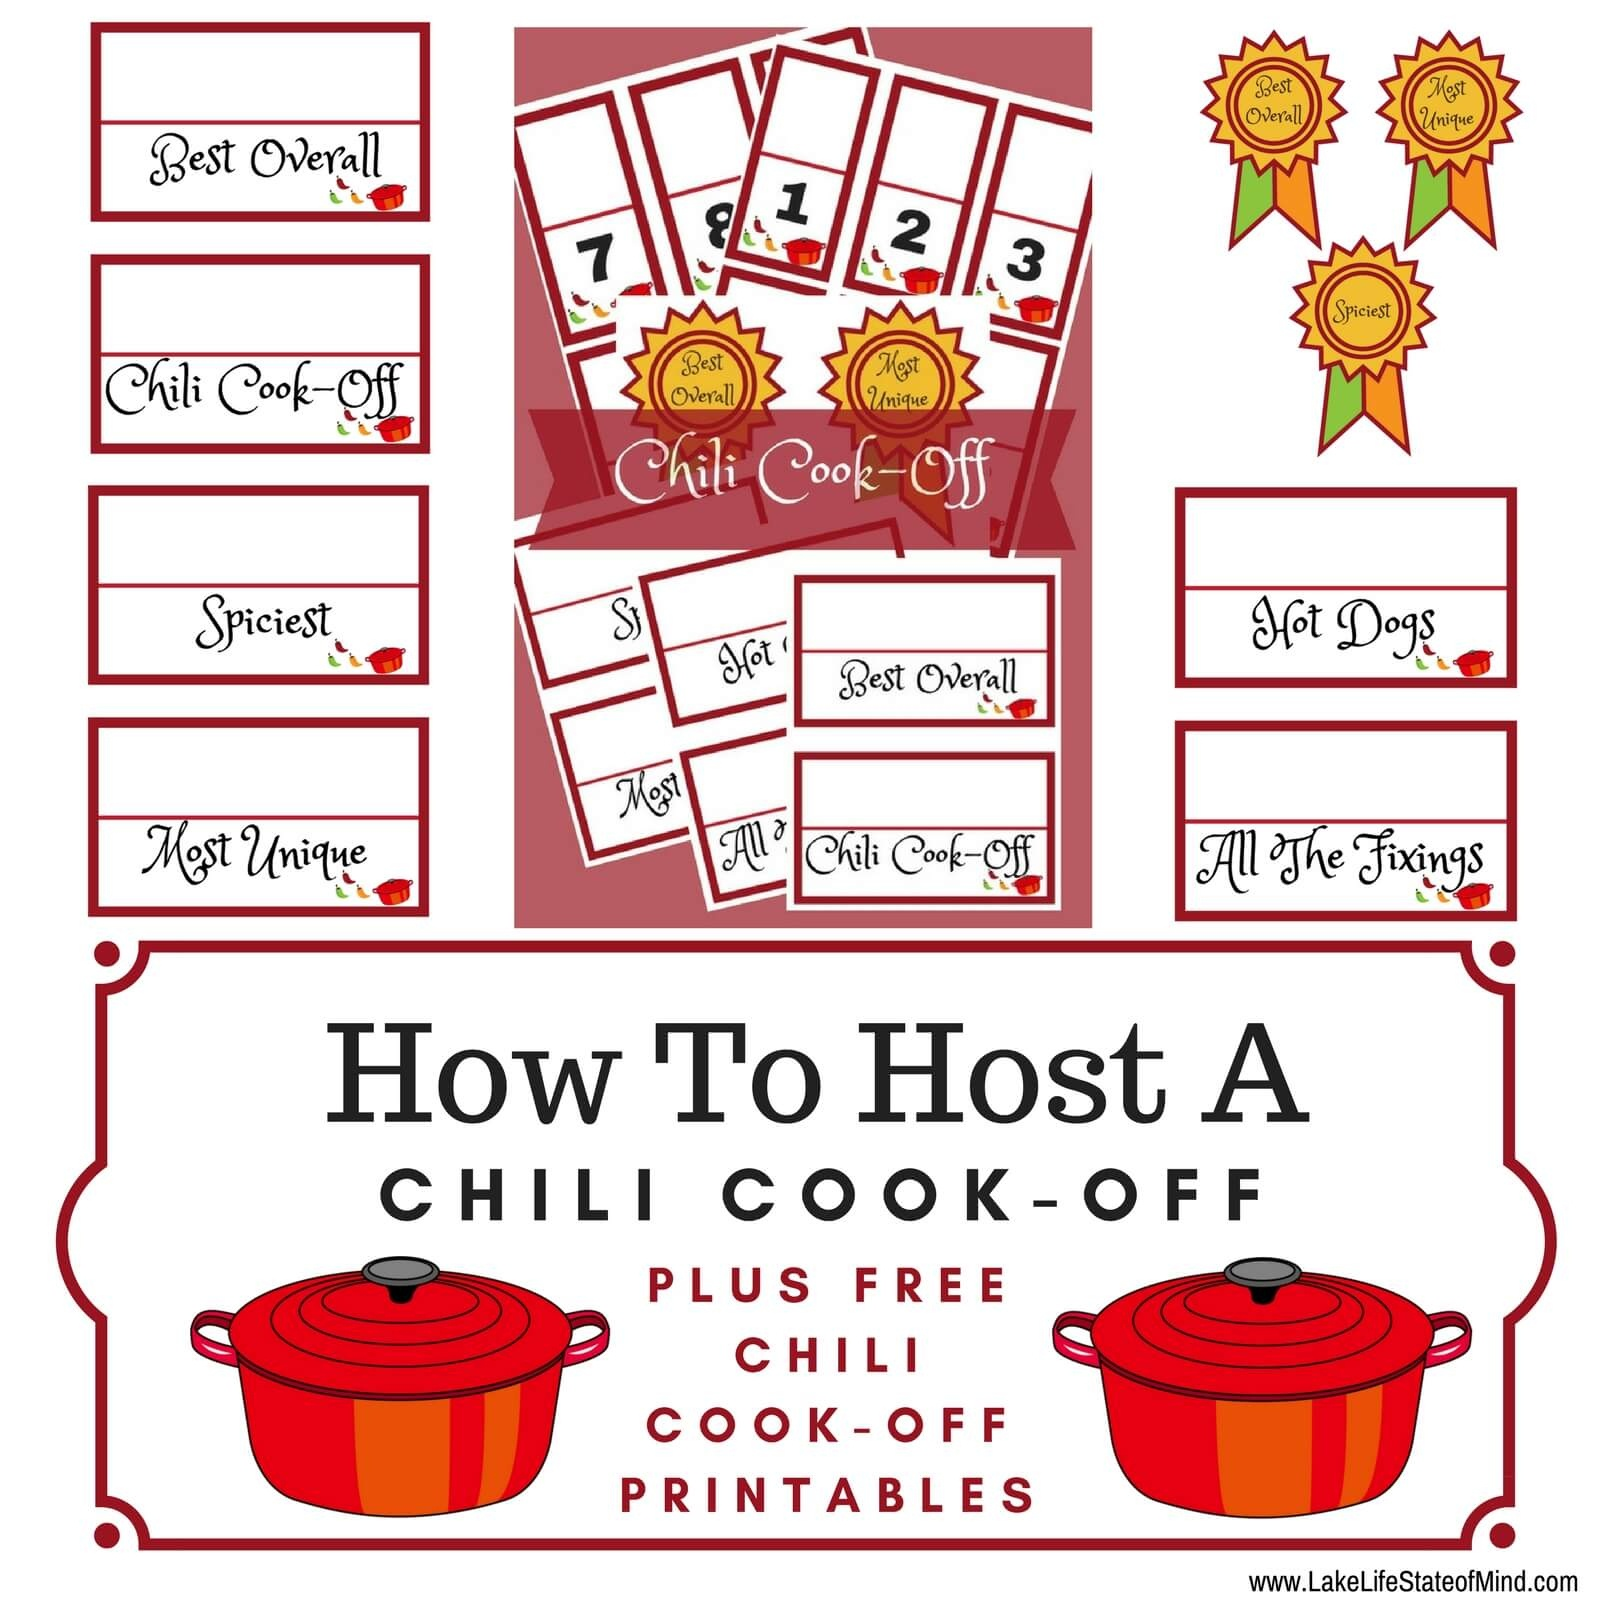 How To Throw The Ultimate Chili Cook-Off | Lake Life State Of Mind - Chili Cook Off Printables Free